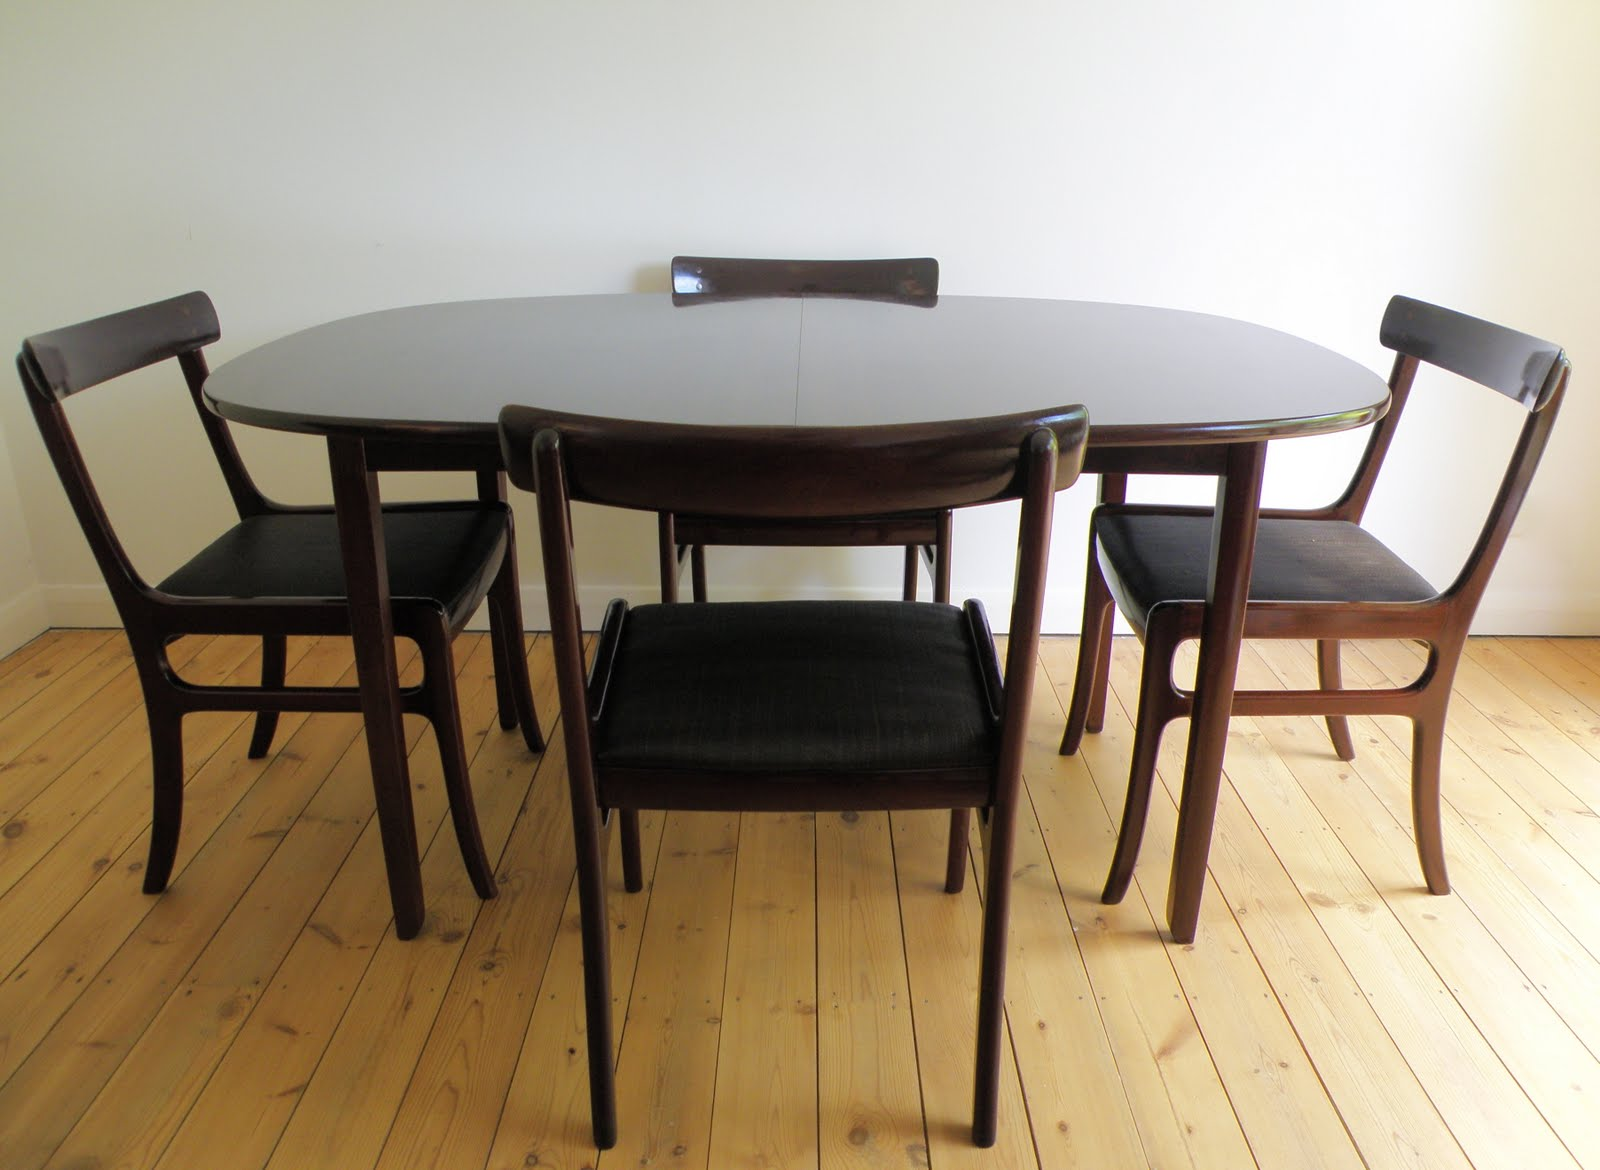 Antikmodern the shop ole wanscher rungstedlund dining table for P jeppesen furniture